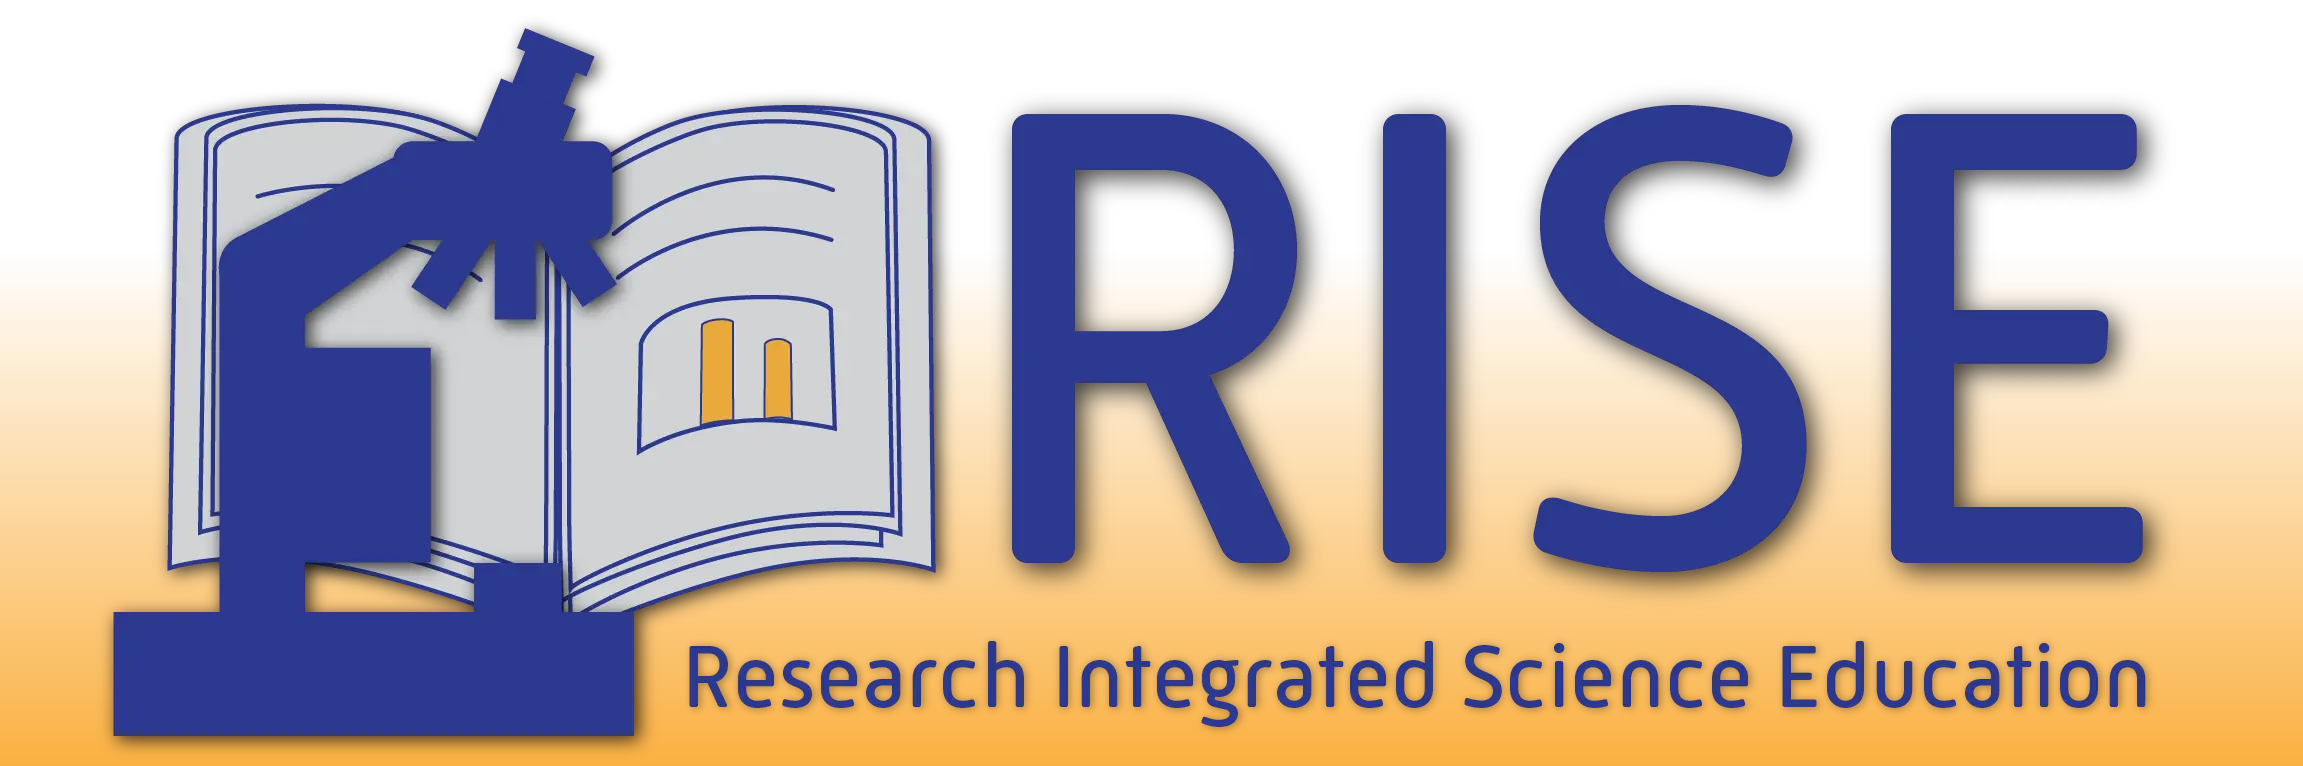 Research Integrated Science Education